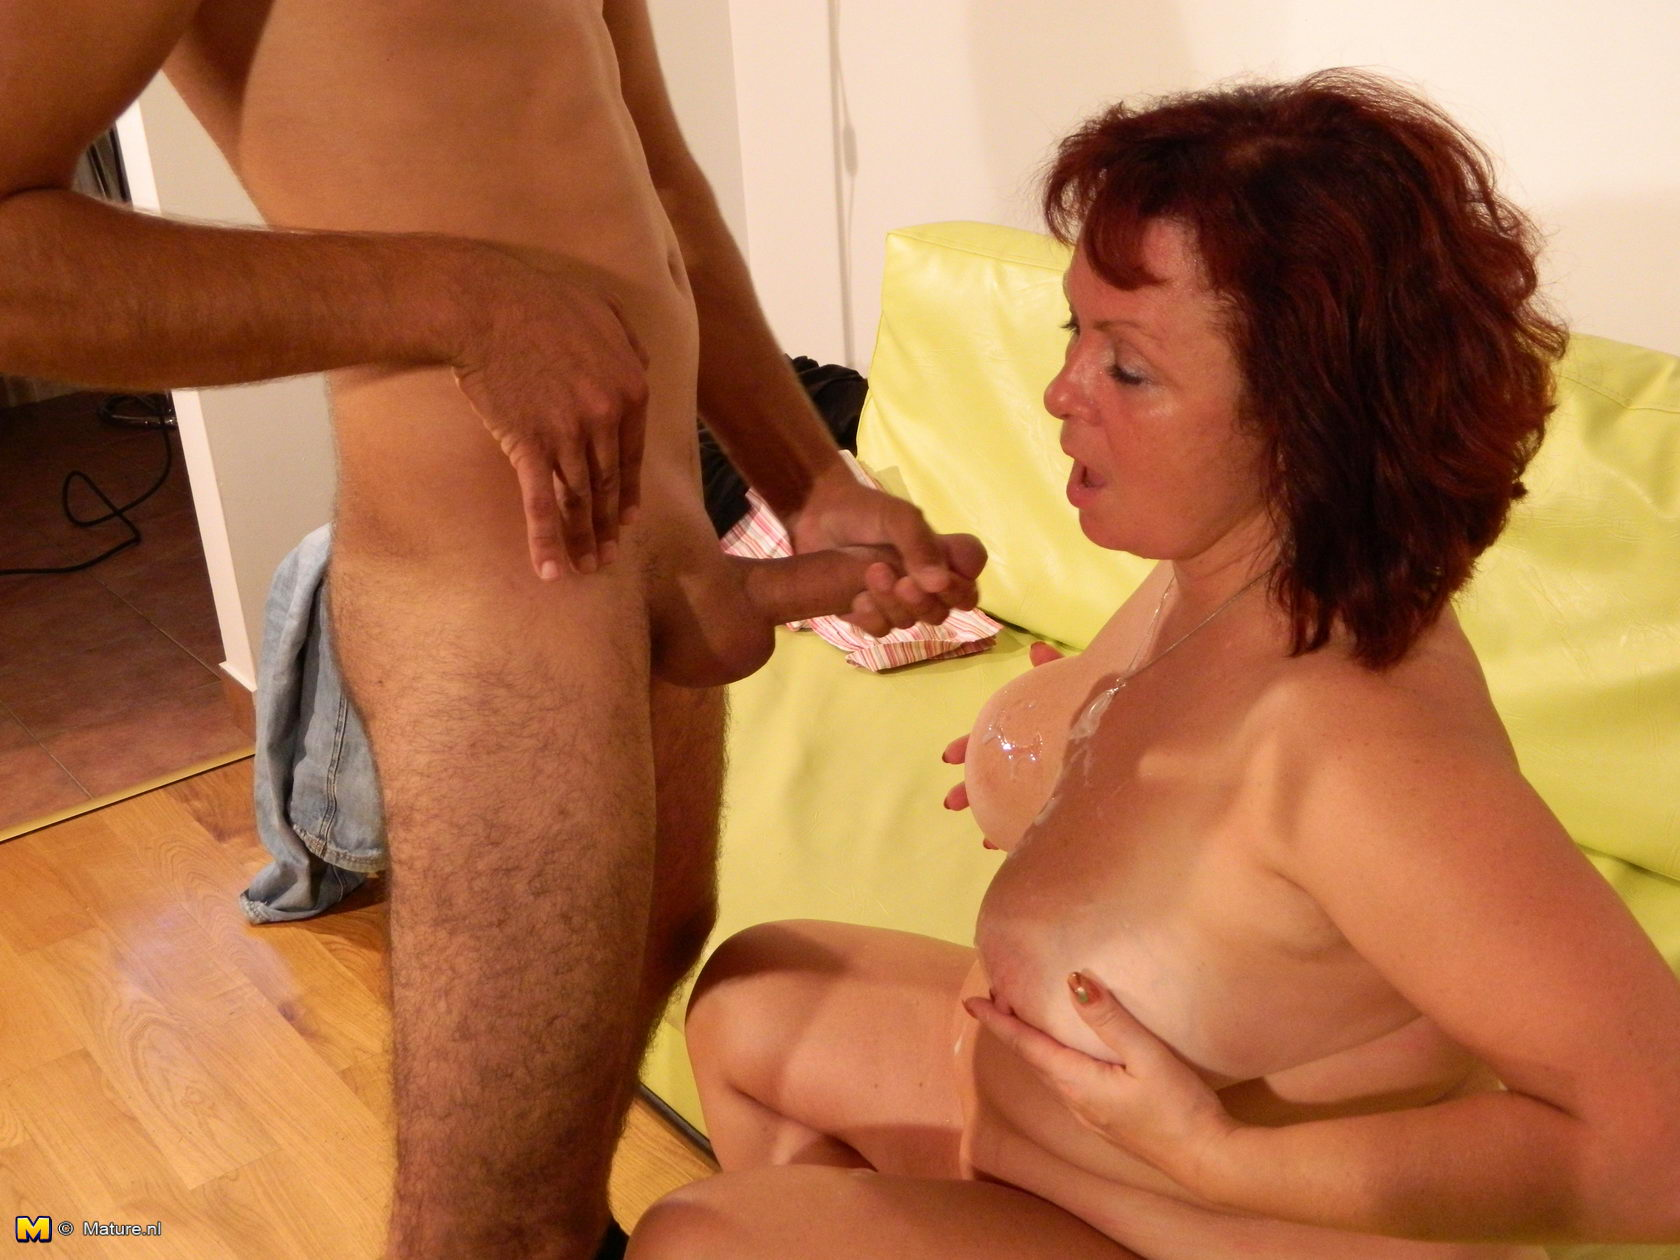 Casual mature sex teacher really. All